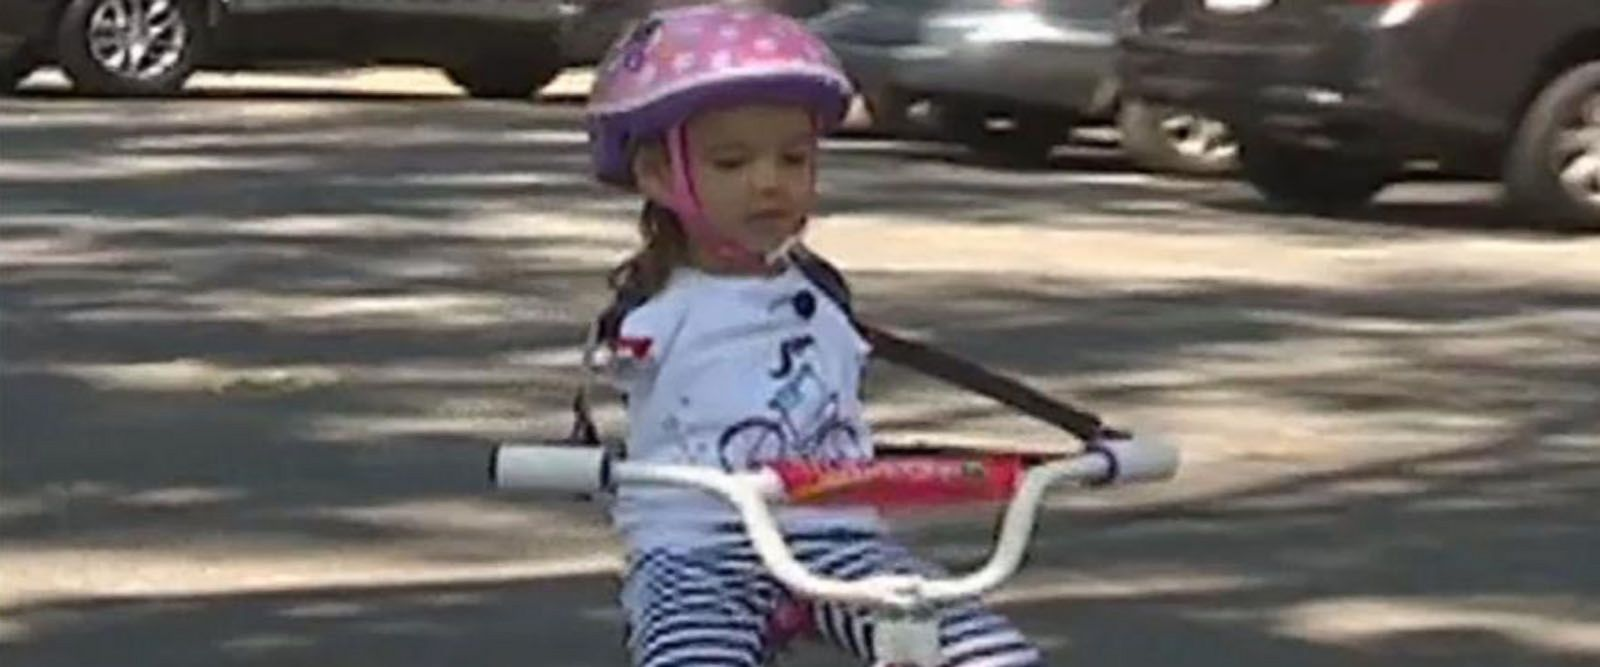 VIDEO: Girl born without arms learns to ride a bike